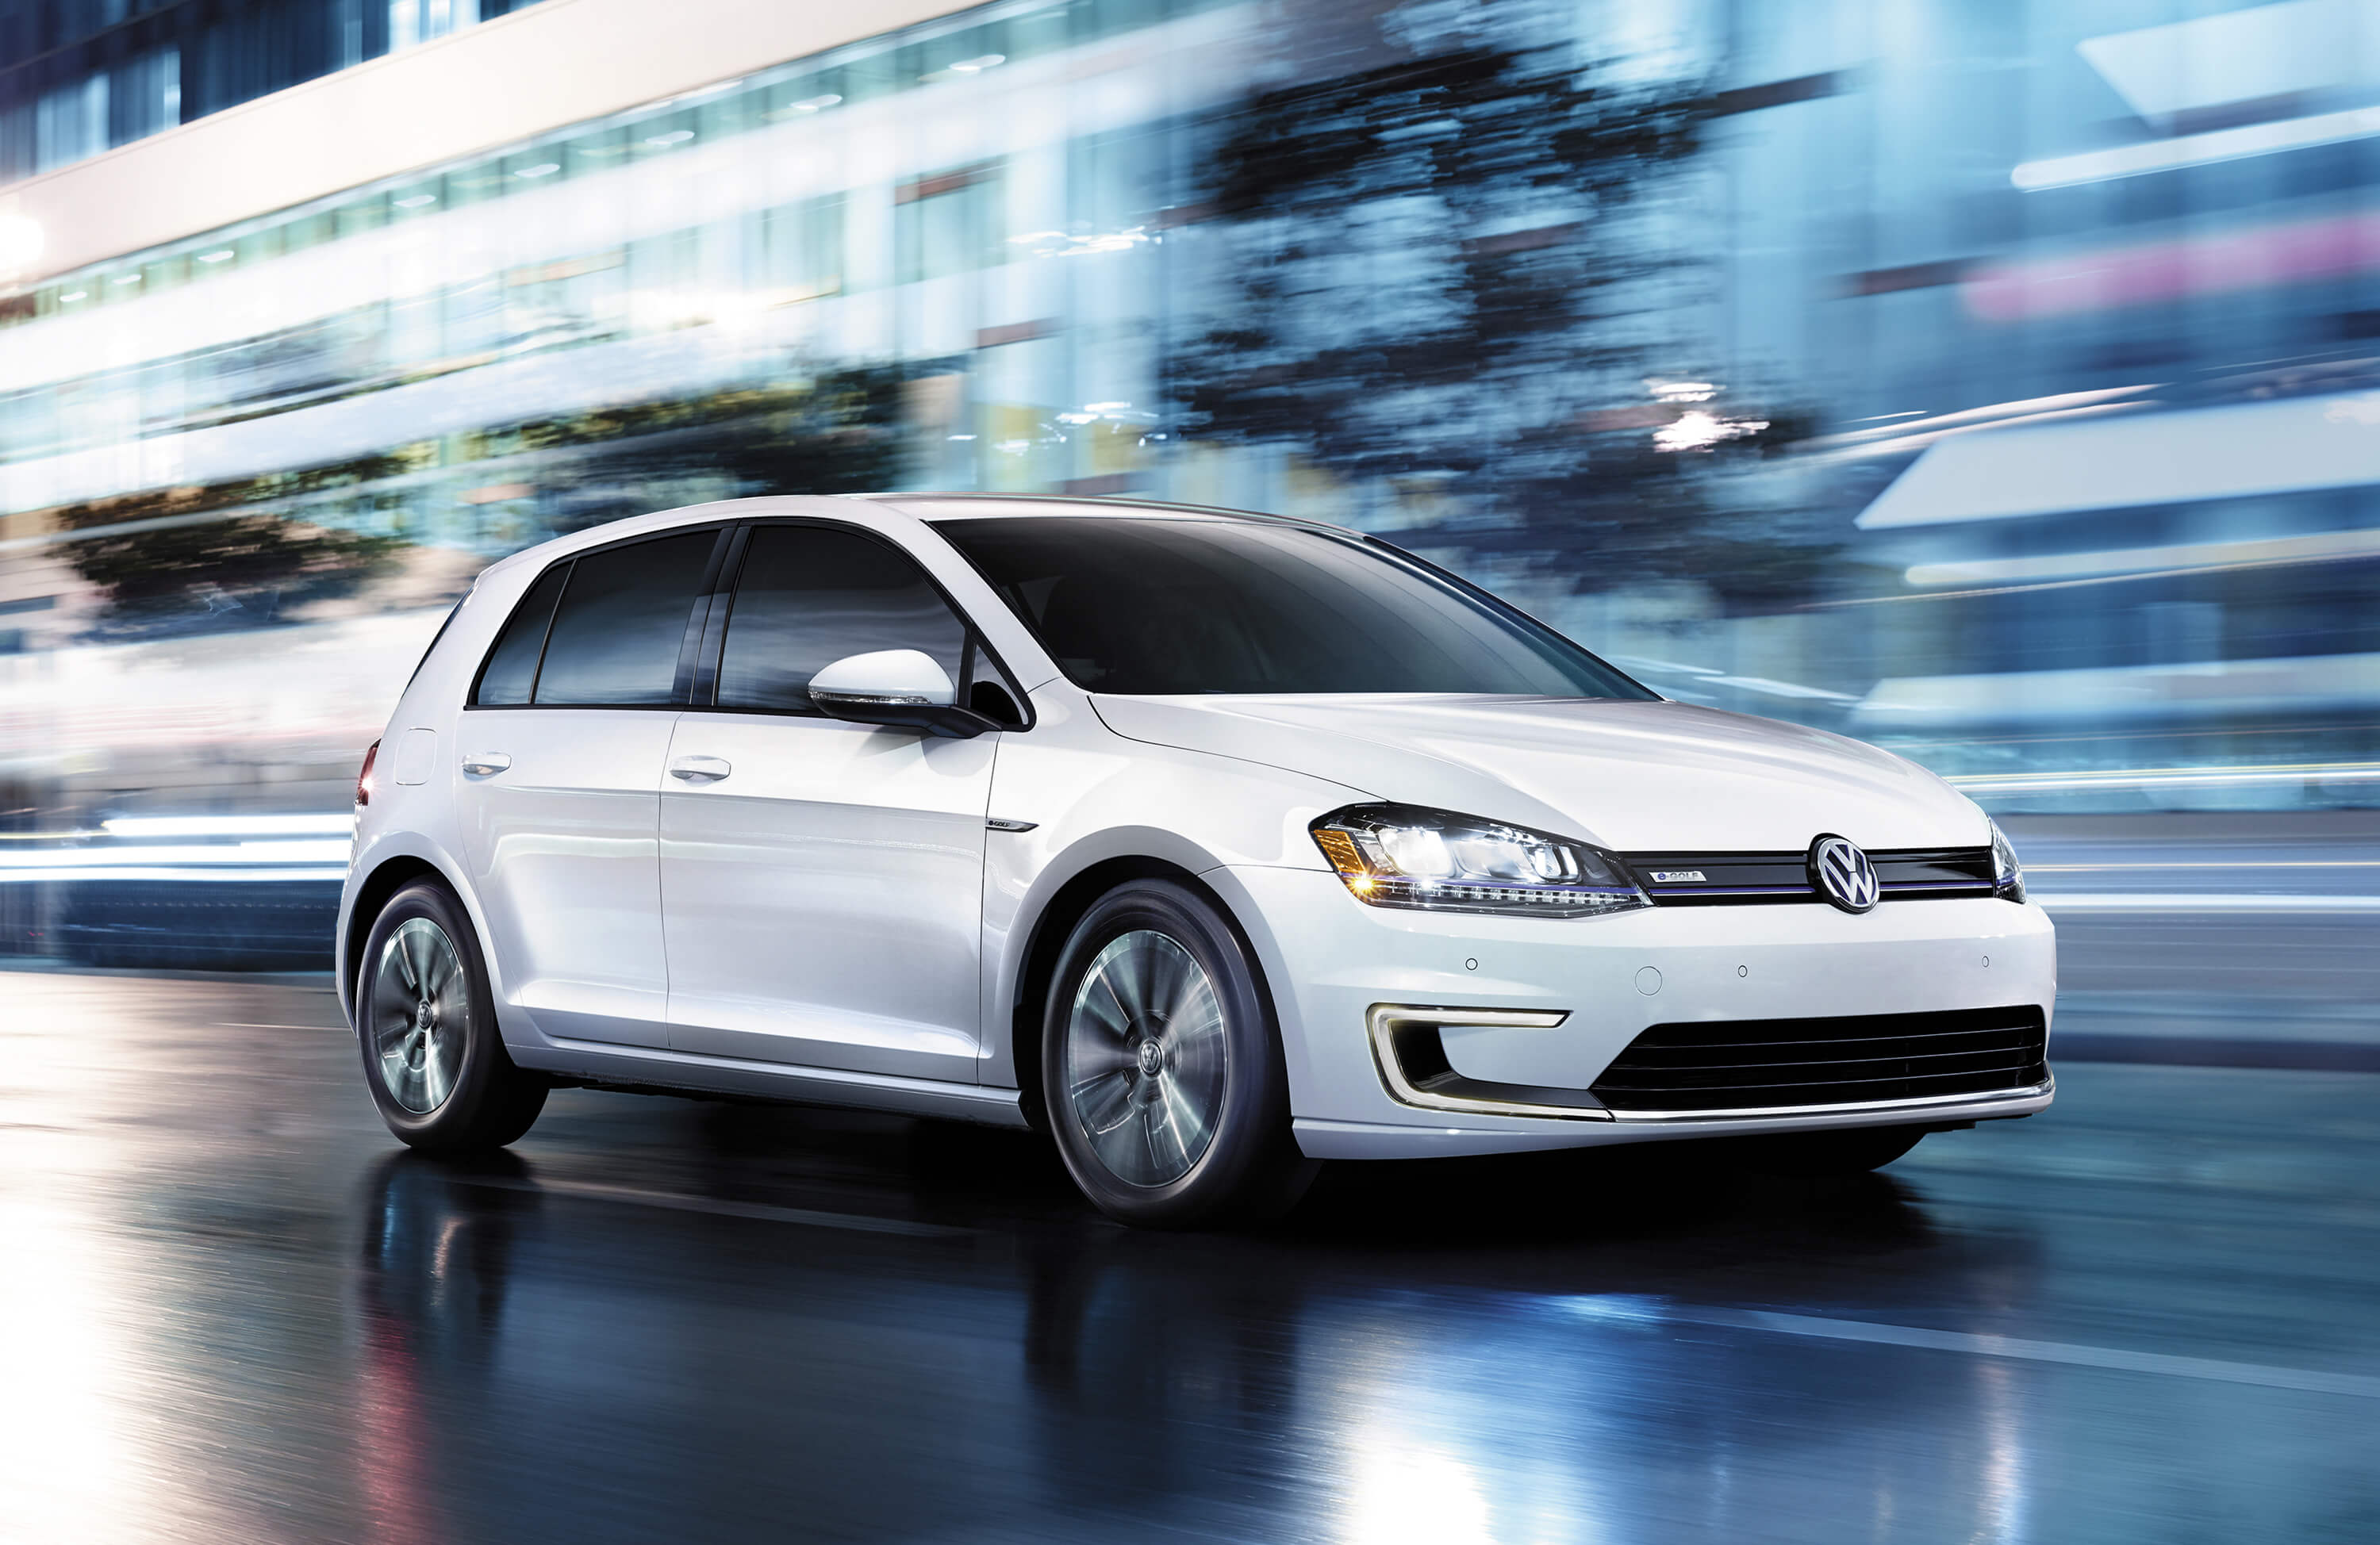 2016 Volkswagen E Golf Performance Preview (View 3 of 11)